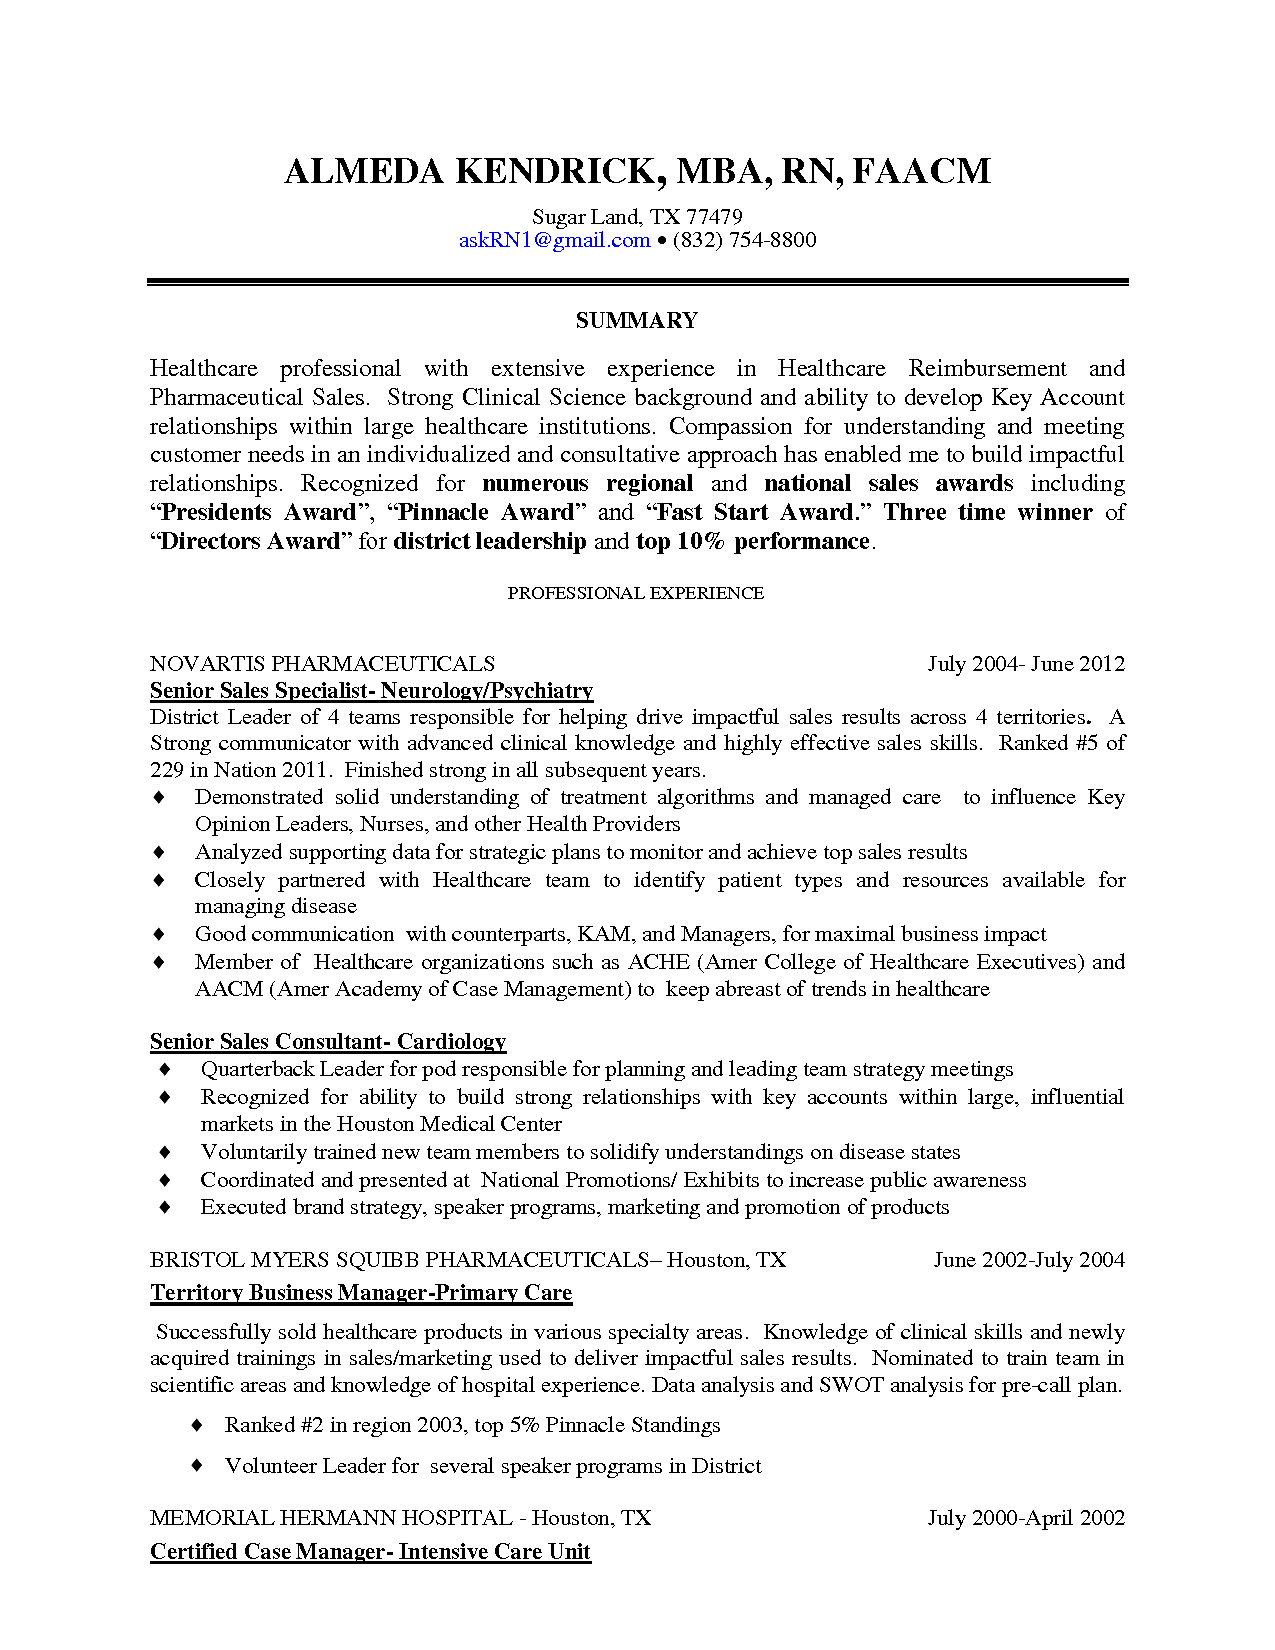 Resume sample skilled nursing facility